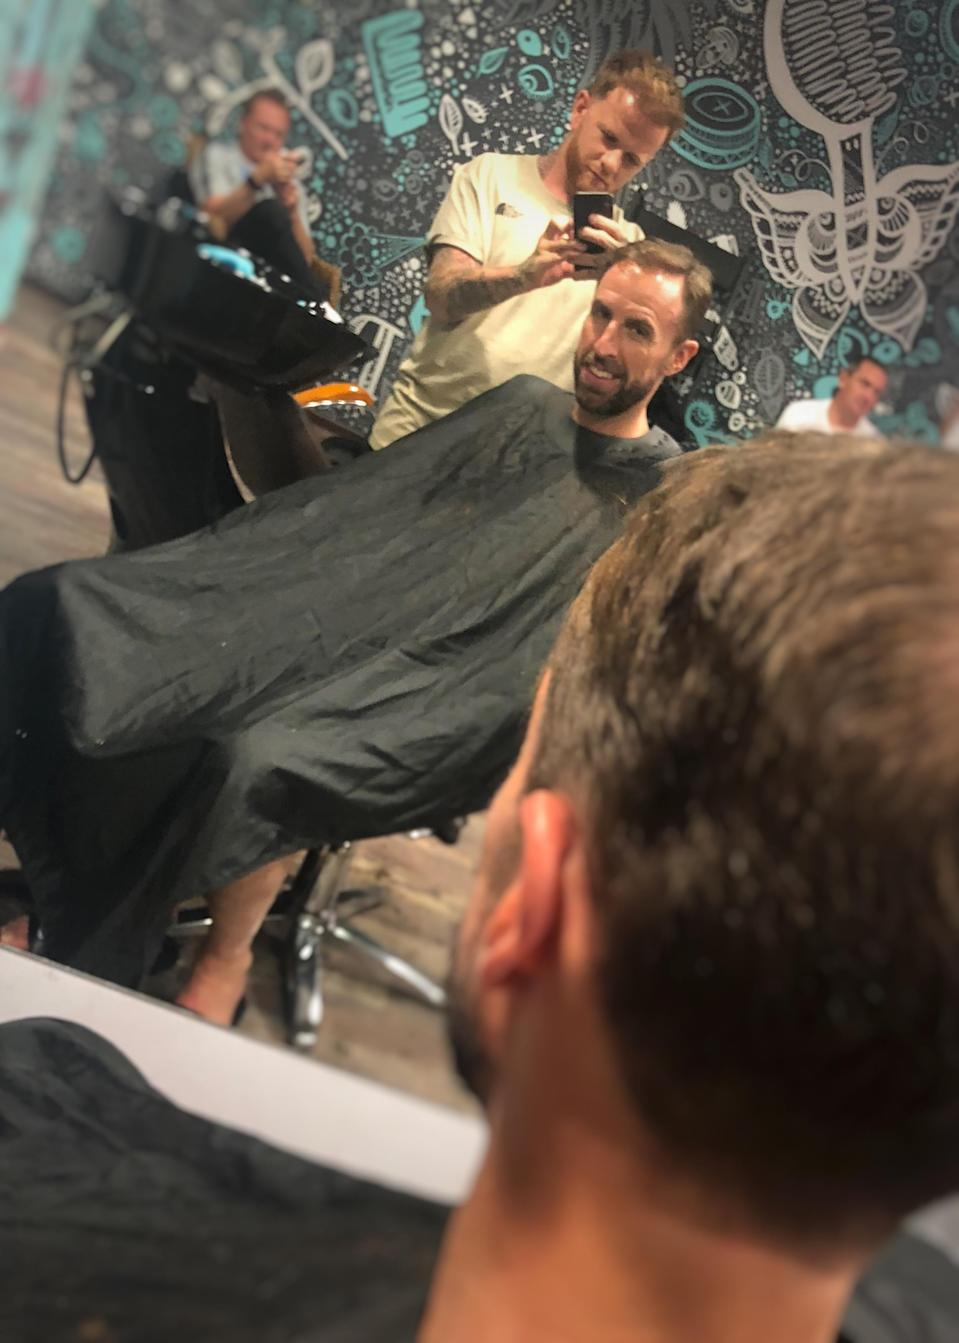 Simon Townley cut Gareth Southgate's hair at the 2018 World Cup in Russia